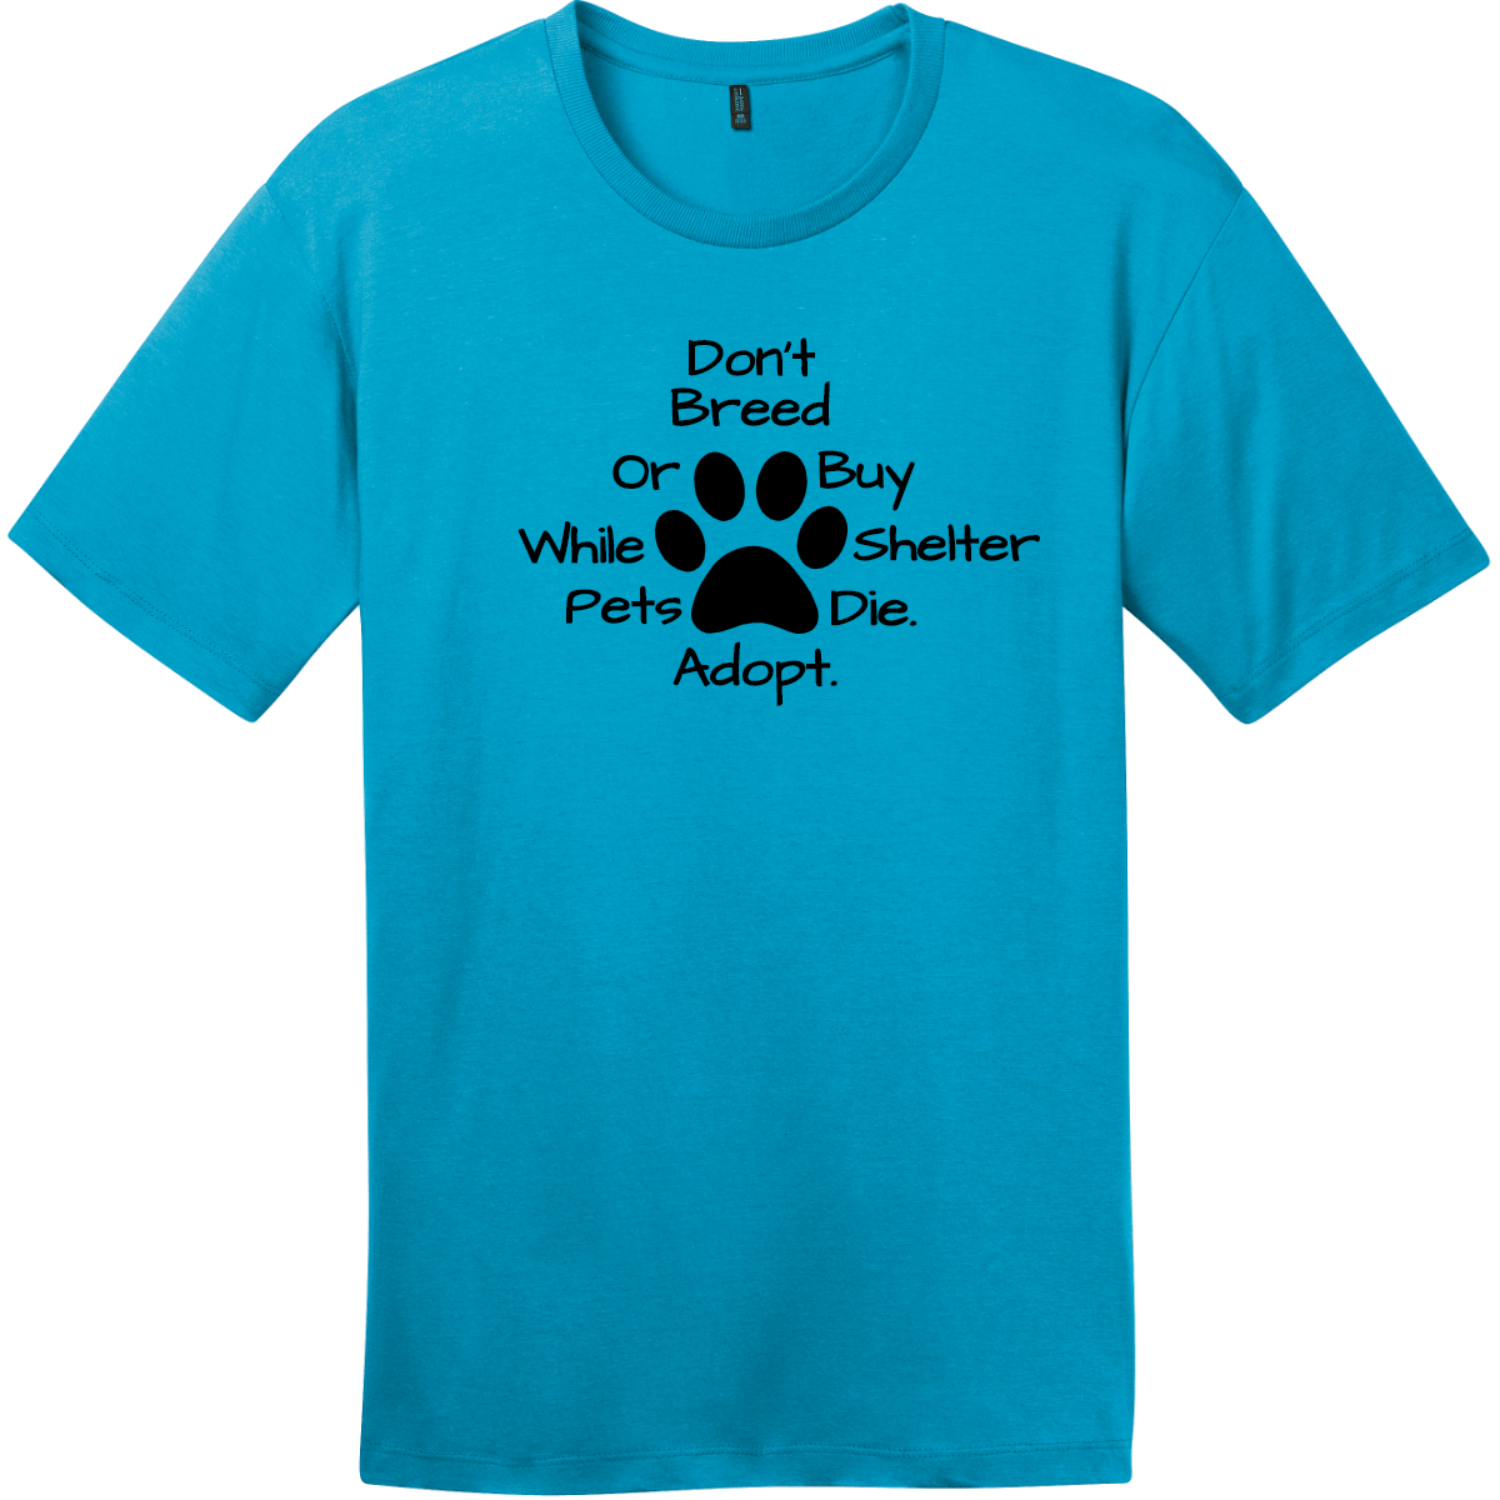 Don't Breed Or Buy While Shelter Pets Die T-Shirt Bright Turquoise District Perfect Weight Tee DT104